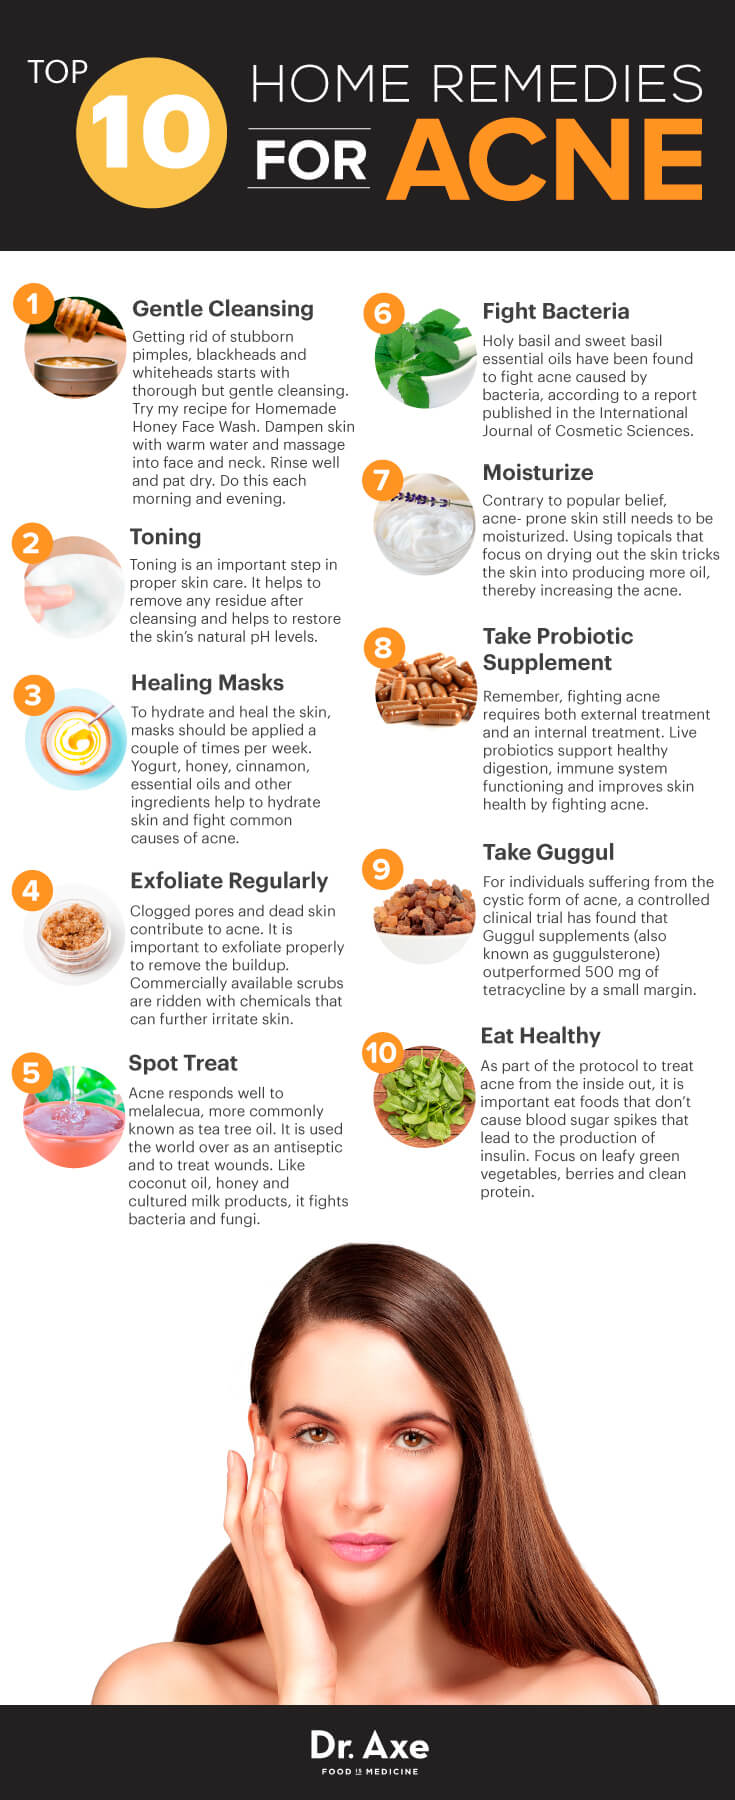 10 Pretty Simple Home Remedies For Acne That Work